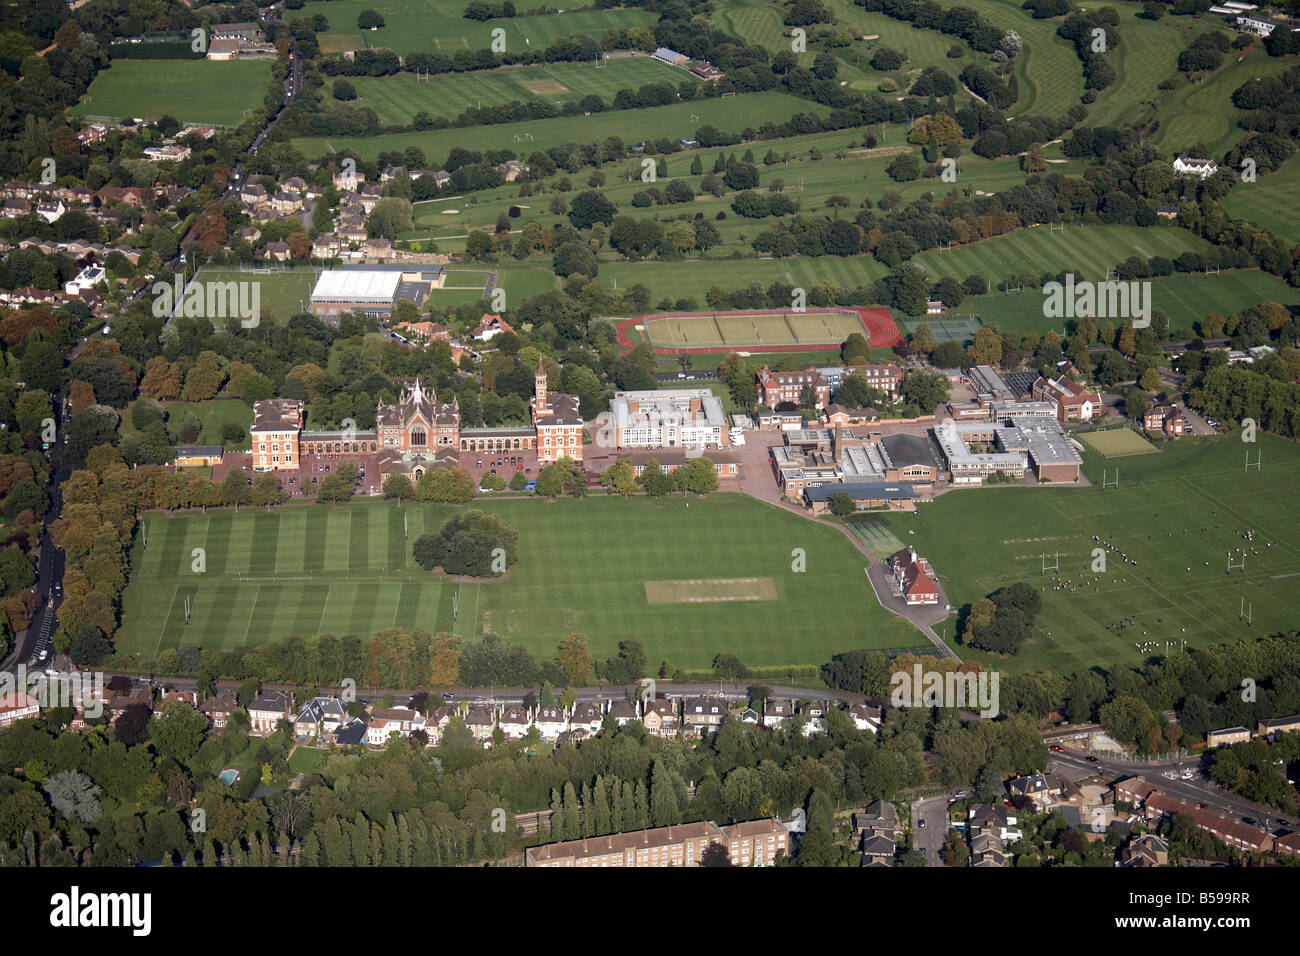 Aerial view north east of Dulwich College playing fields tennis courts Alleyn Park Road Dulwich Sydenham Hill Golf - Stock Image